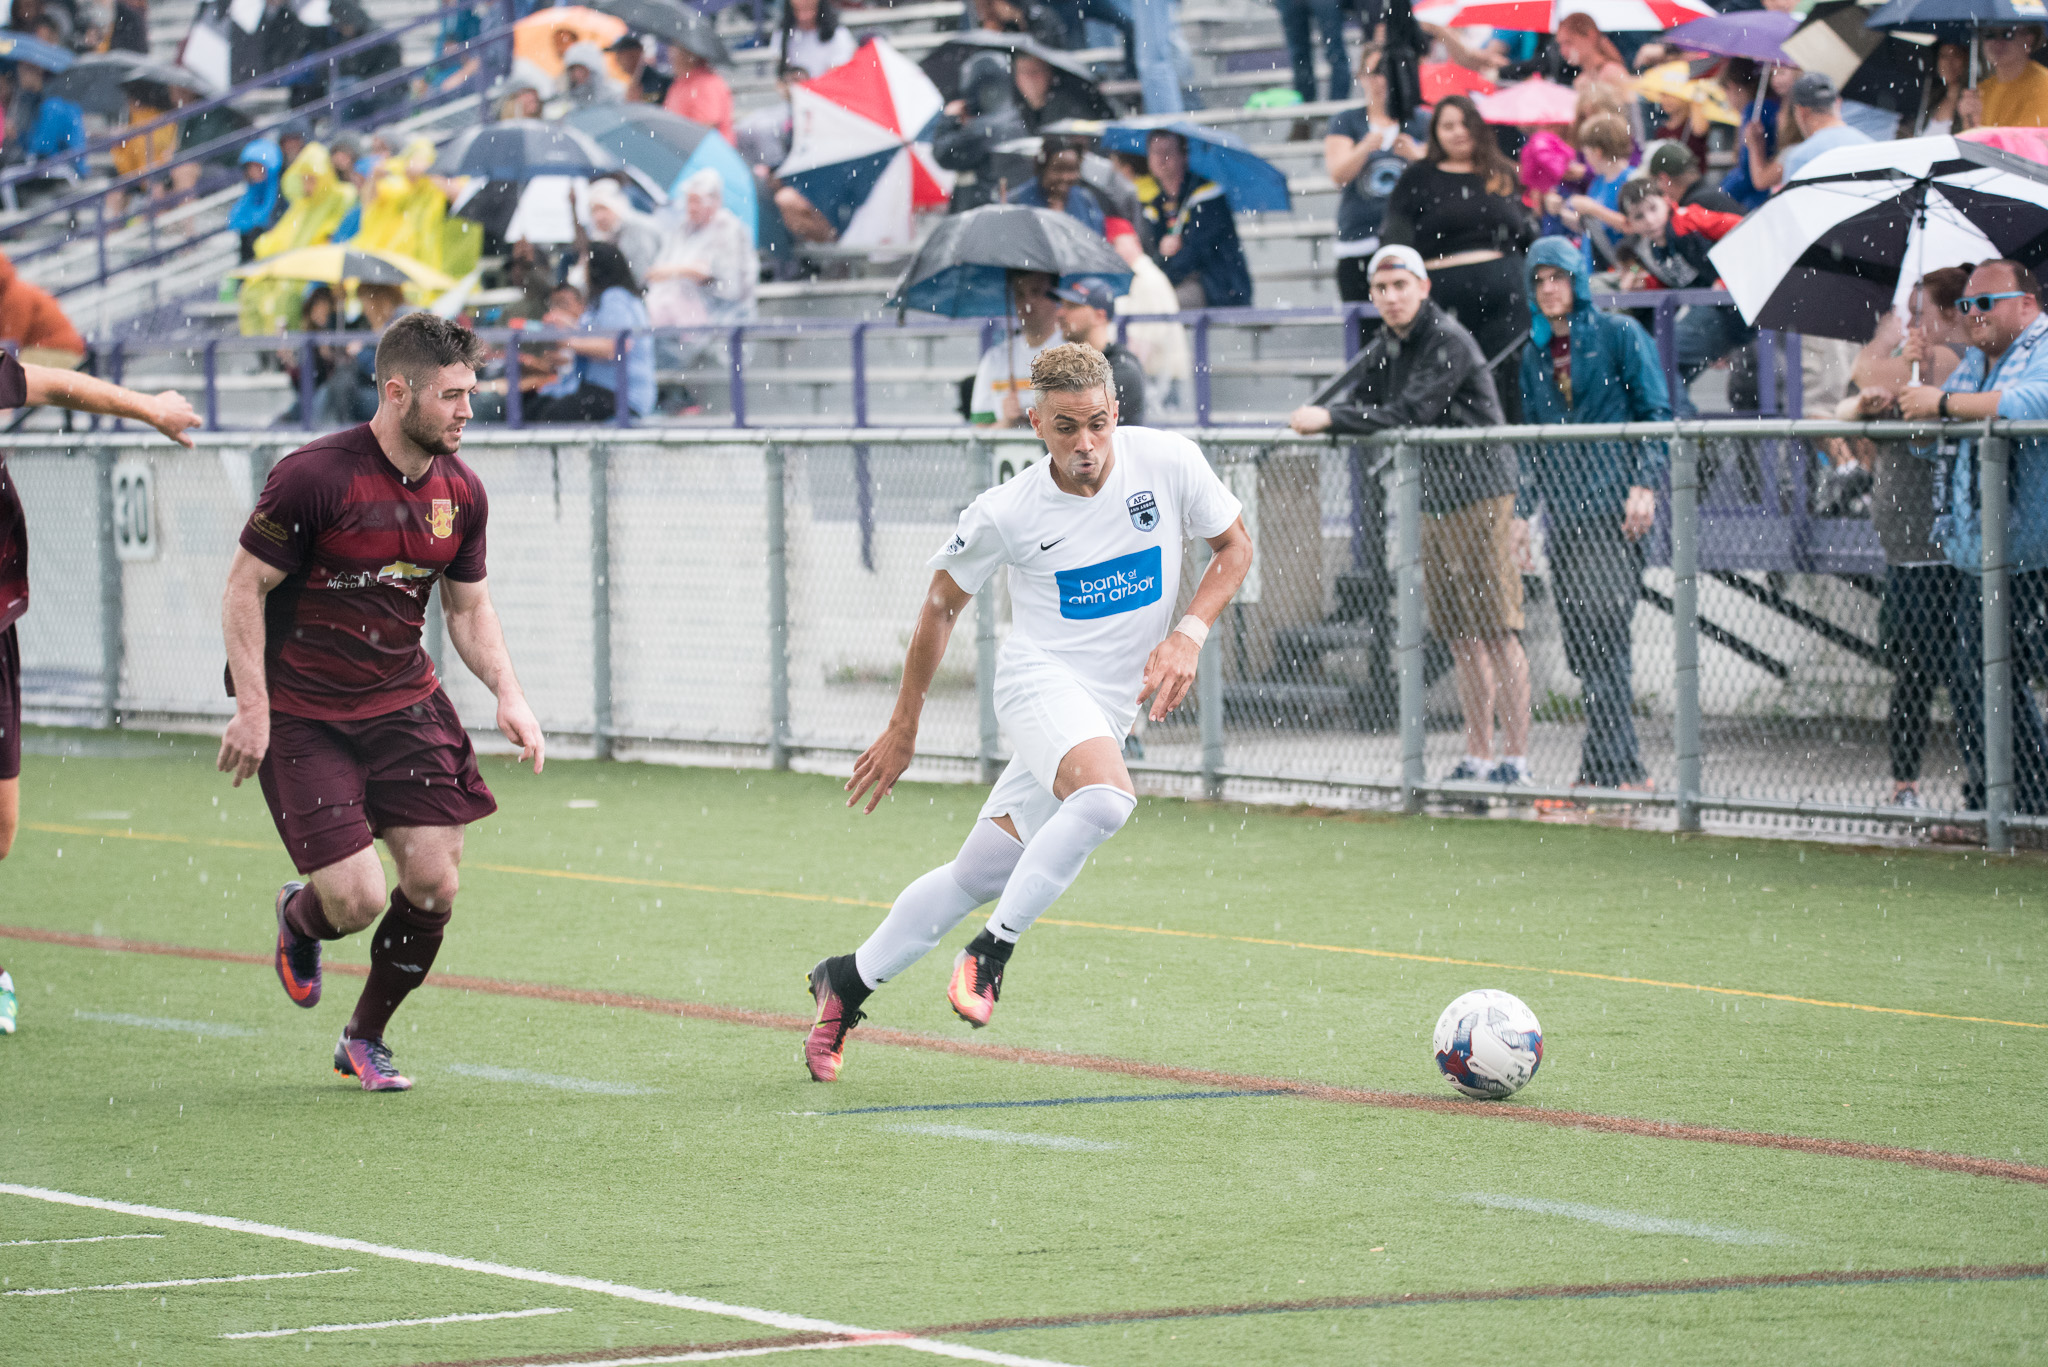 May Numbers - 5-0-2 // 15 pts (Includes Open Cup)11 Goals For; 4 Goals Against5 different goal scorers3 clean sheets